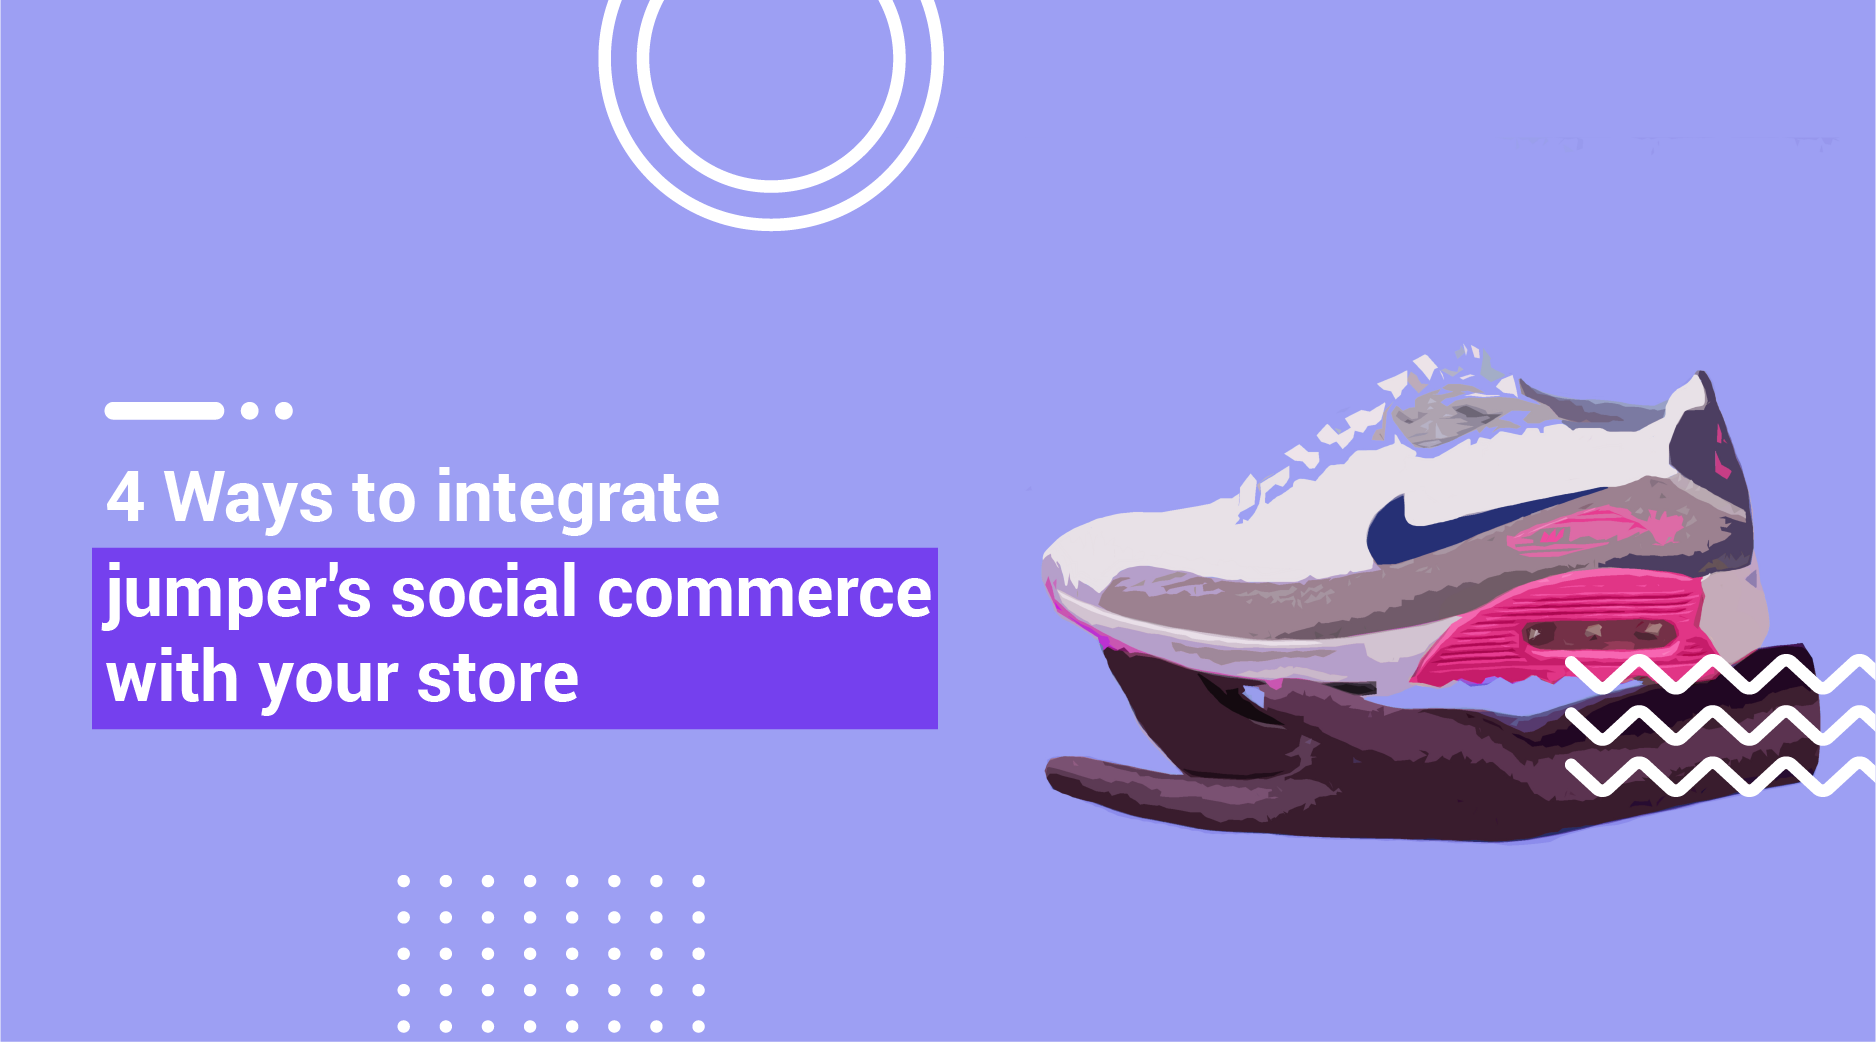 4 Ways to Integrate jumper's Social Commerce With Your Store